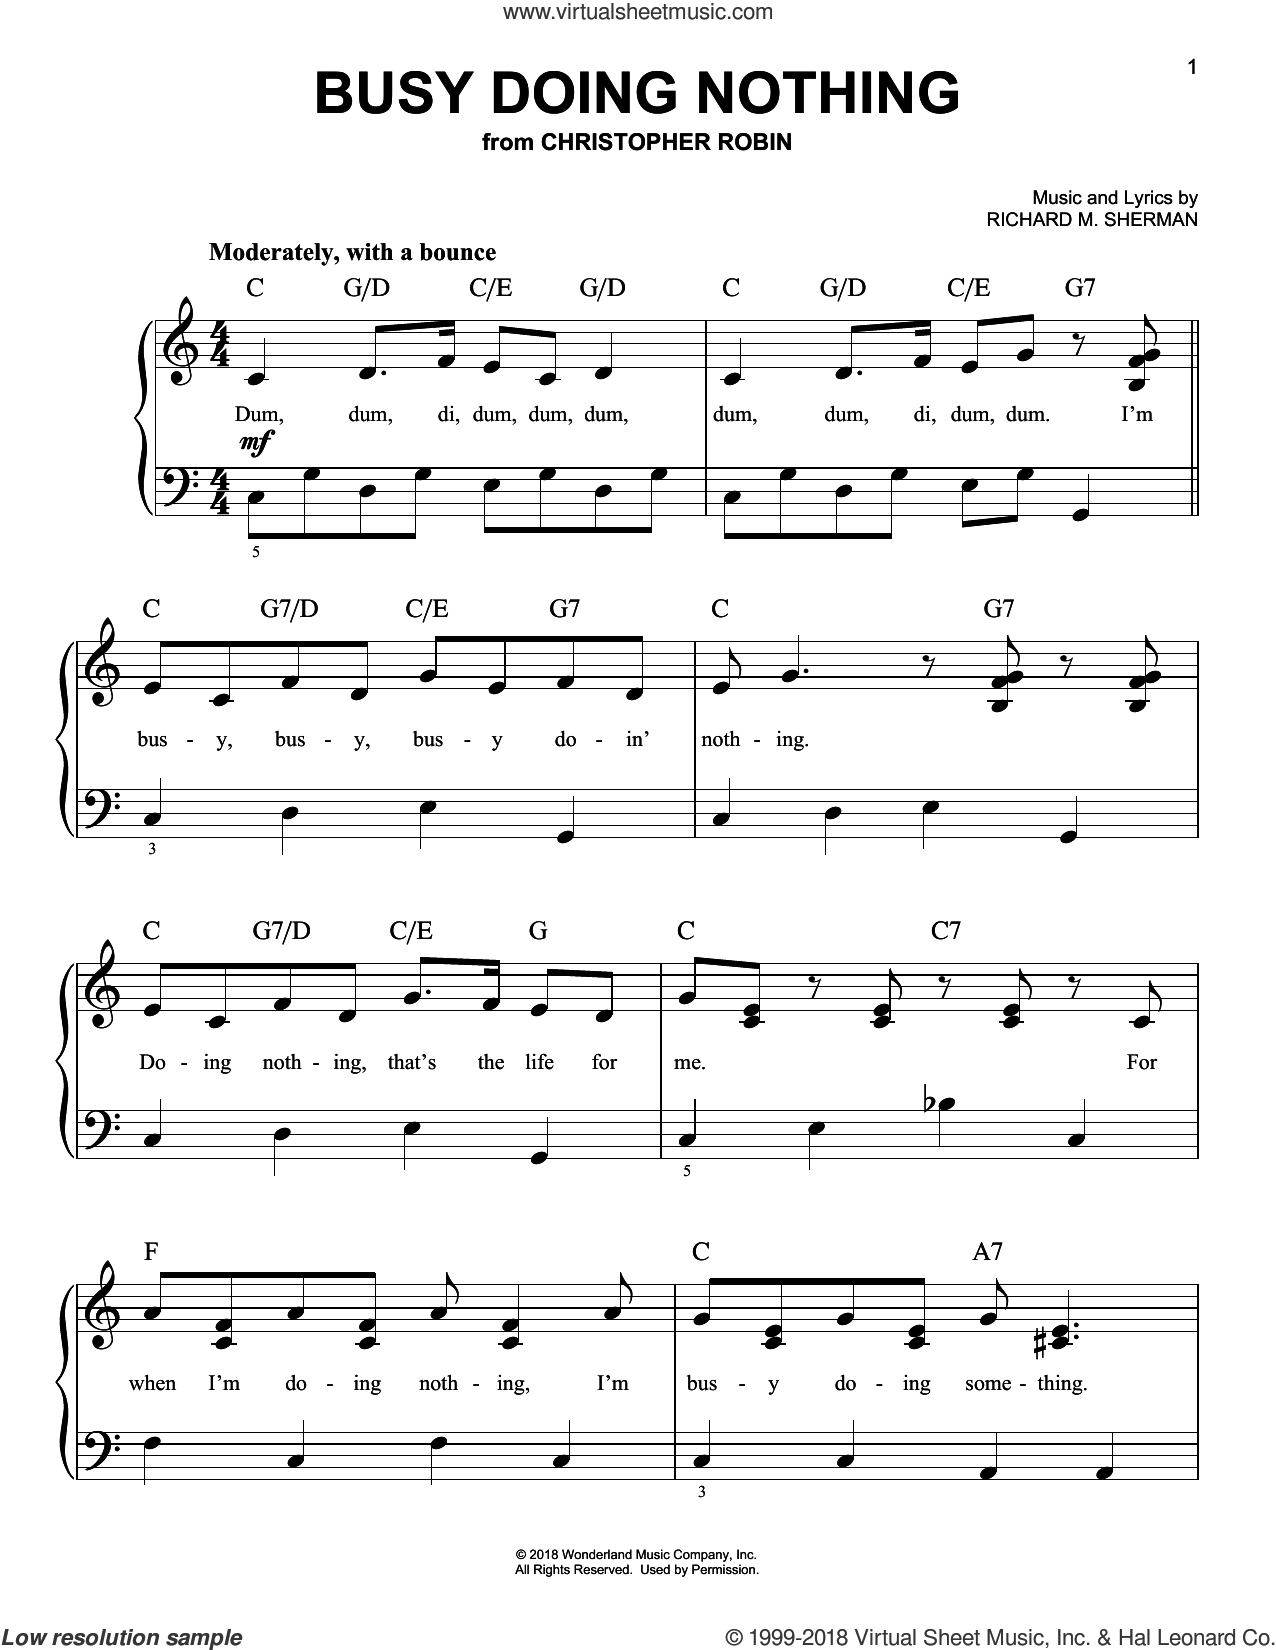 Busy Doing Nothing (from Christopher Robin) sheet music for piano solo by Geoff Zanelli & Jon Brion, Geoff Zanelli, Jon Brion and Richard M. Sherman, easy skill level